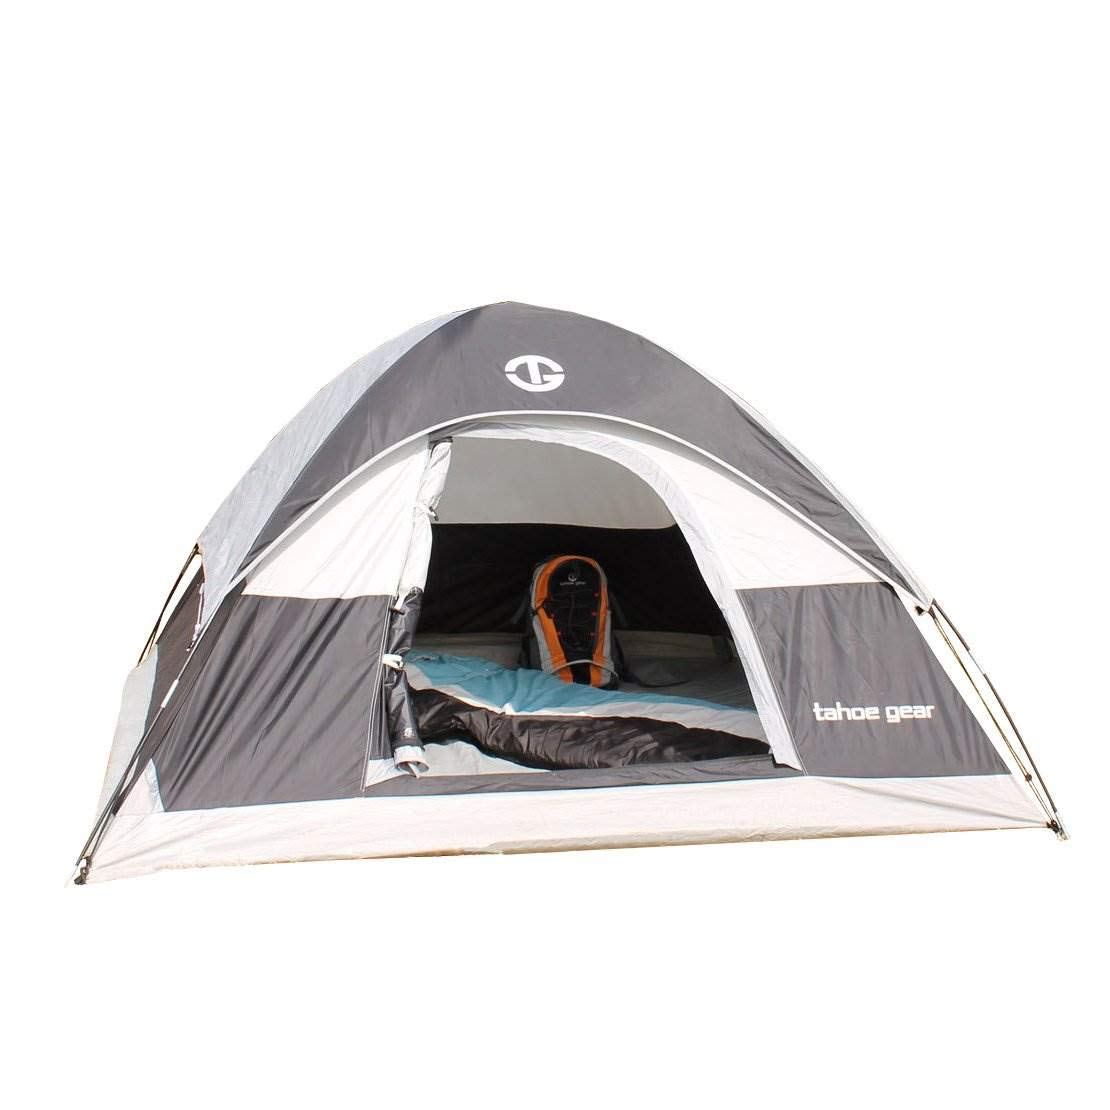 Tahoe Gear Powell 3 Person 3 Season Dome Camping Frame Tent, Black and Grey